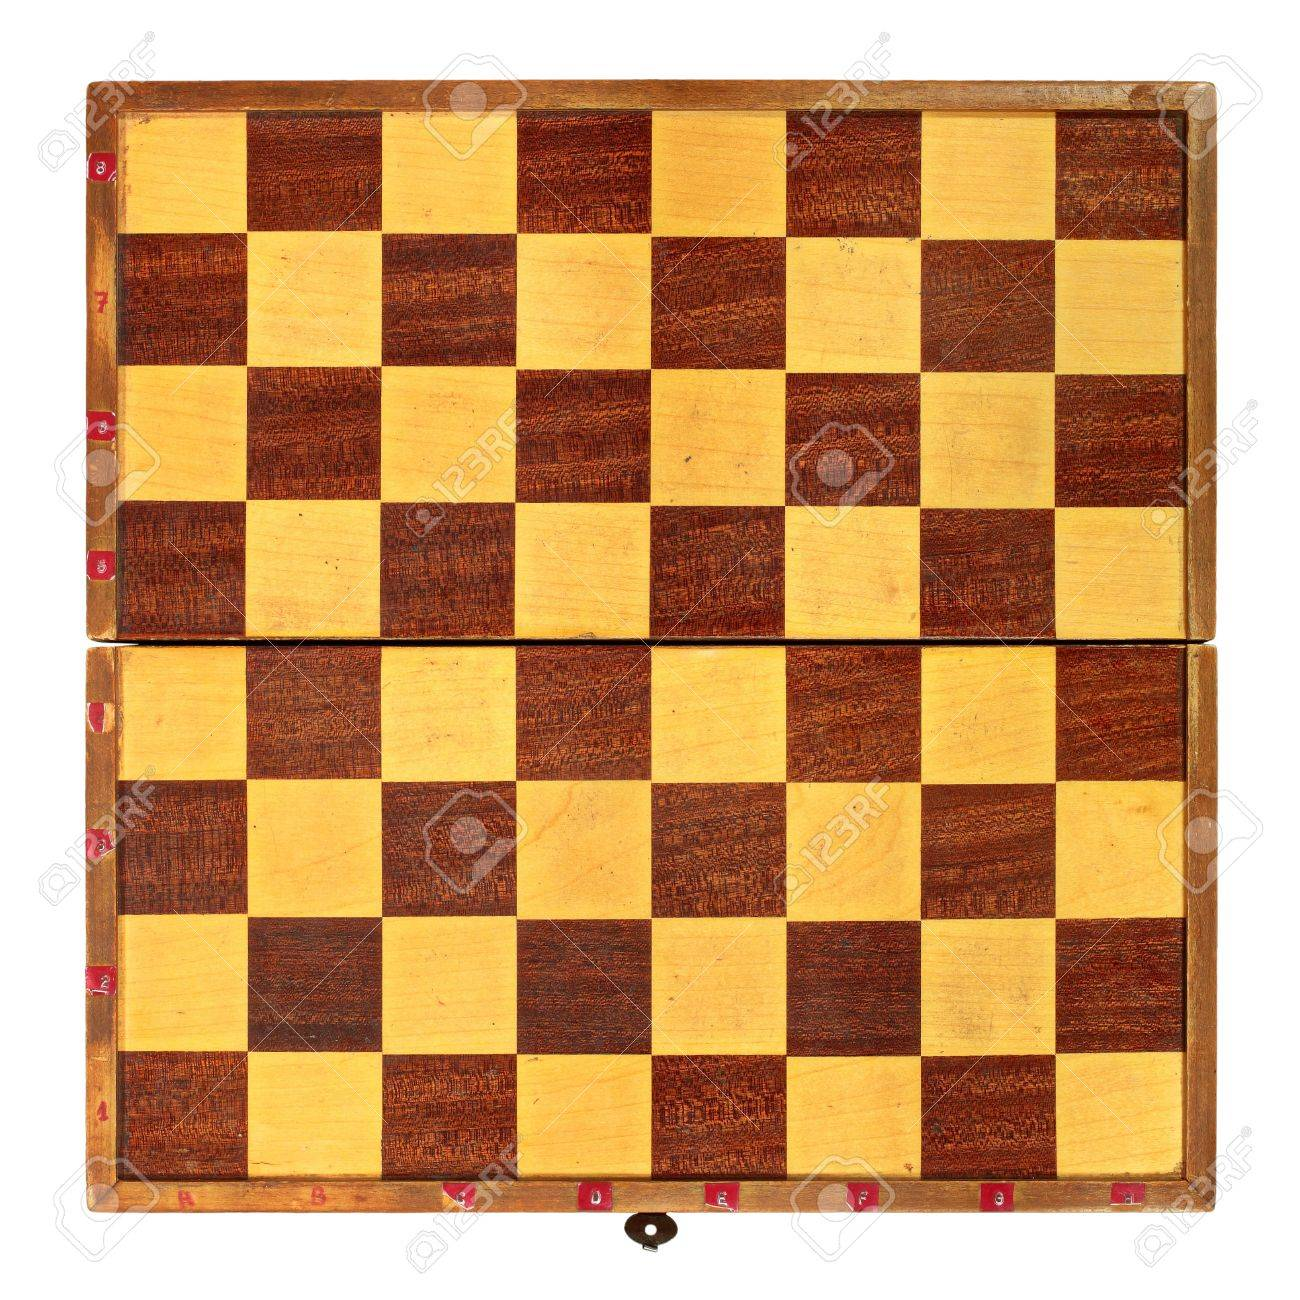 Old Coarse Chess Table Stock Photo - 11810825